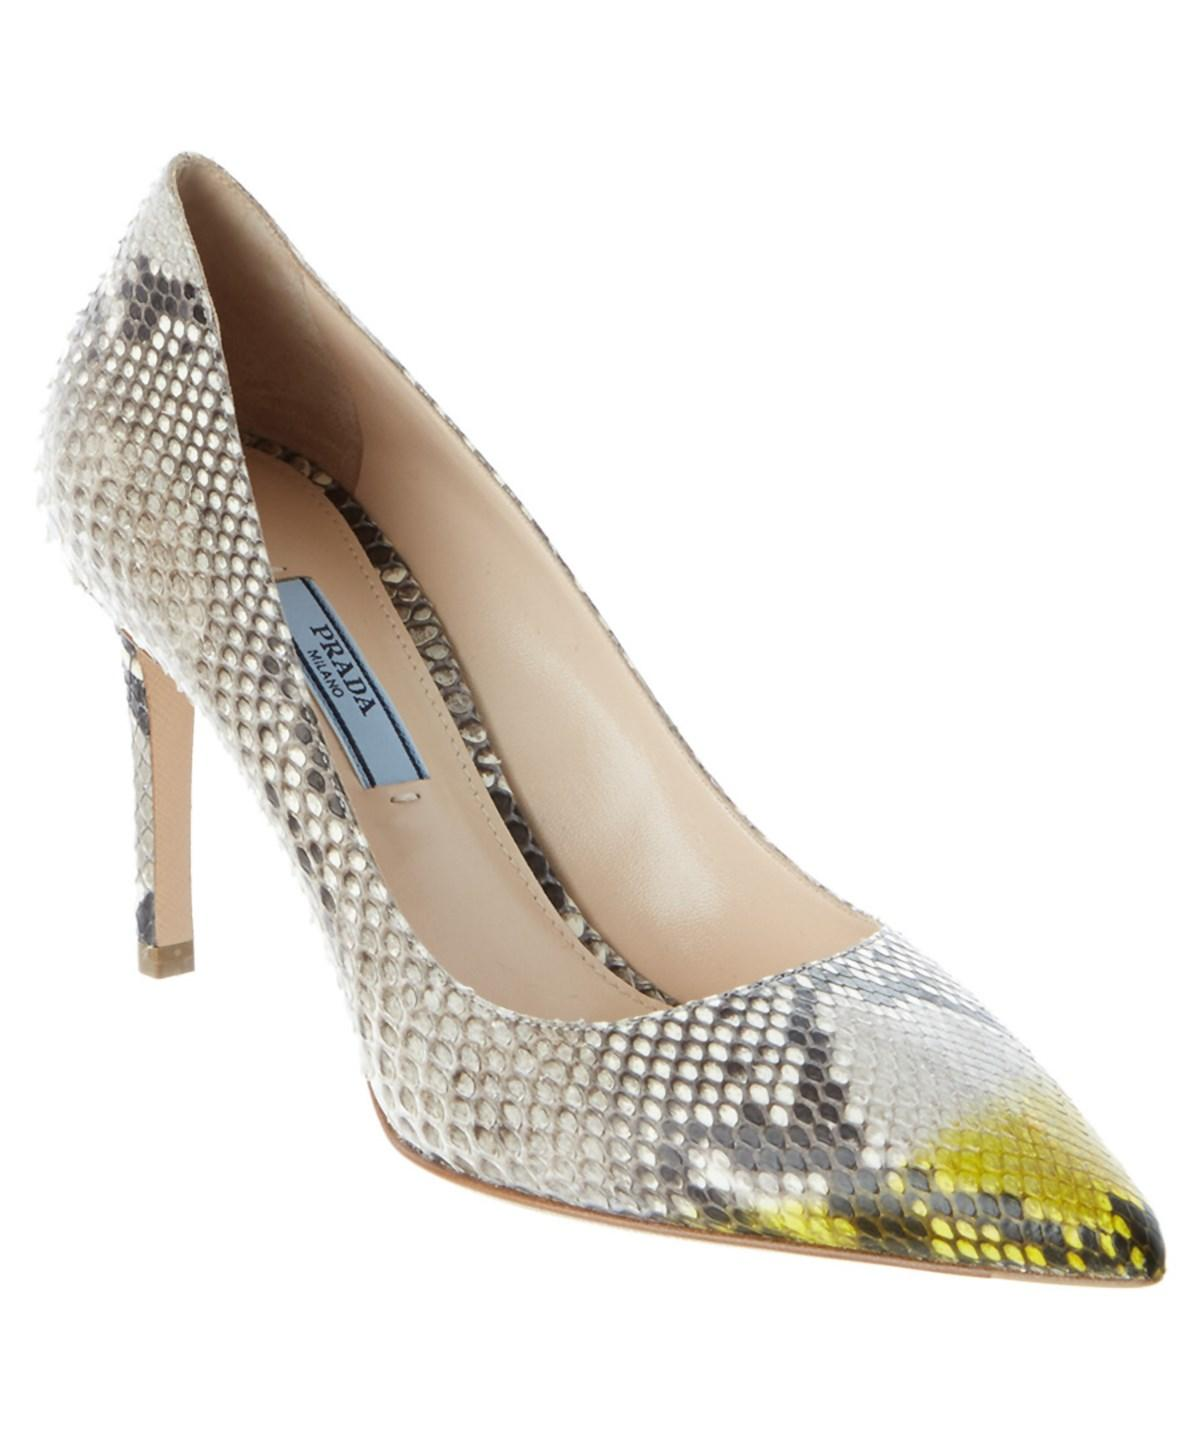 SNAKESKIN EMBOSSED LEATHER POINTY-TOE PUMP'